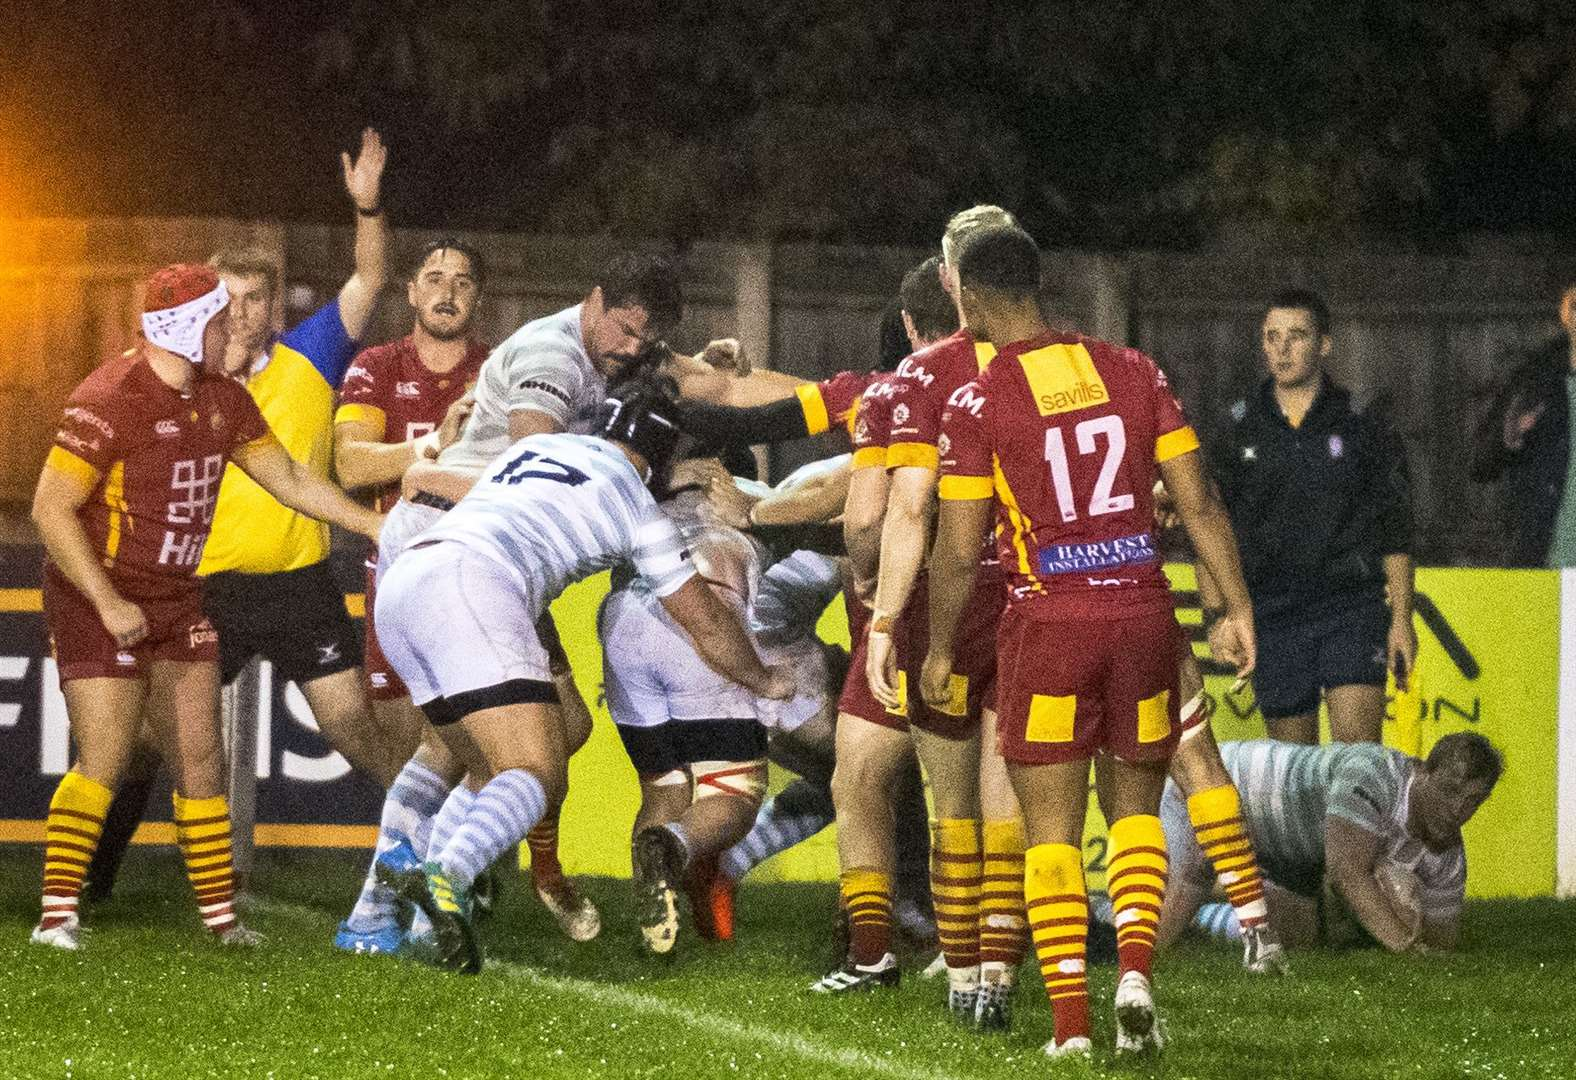 Cambridge University RUFC seal Town v Gown victory over Cambridge Rugby Club